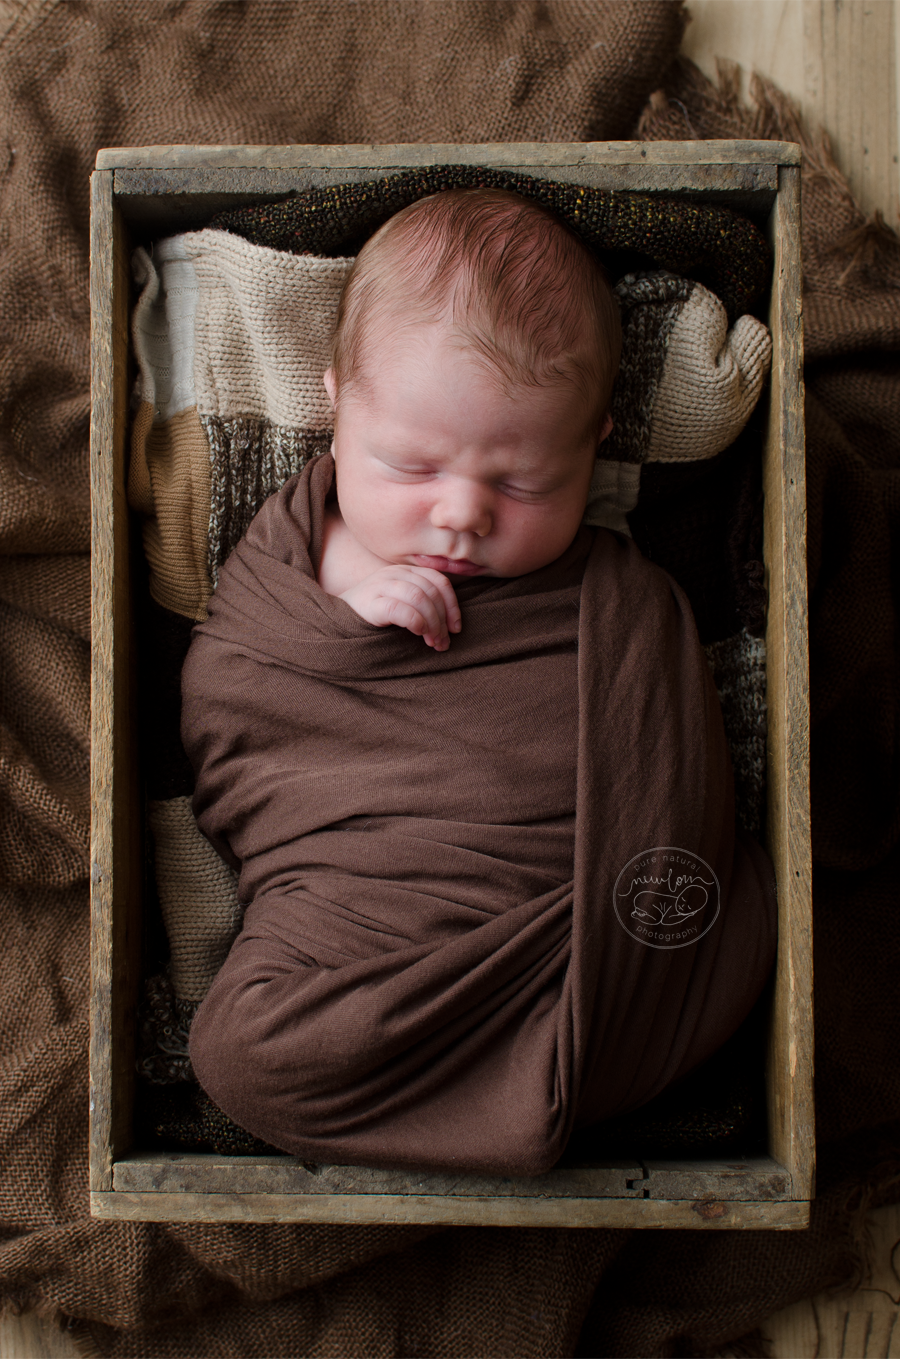 newborn-photos-ottawa-asher-wood-crate-brown-quilt-blanket-sleeping-baby-4921